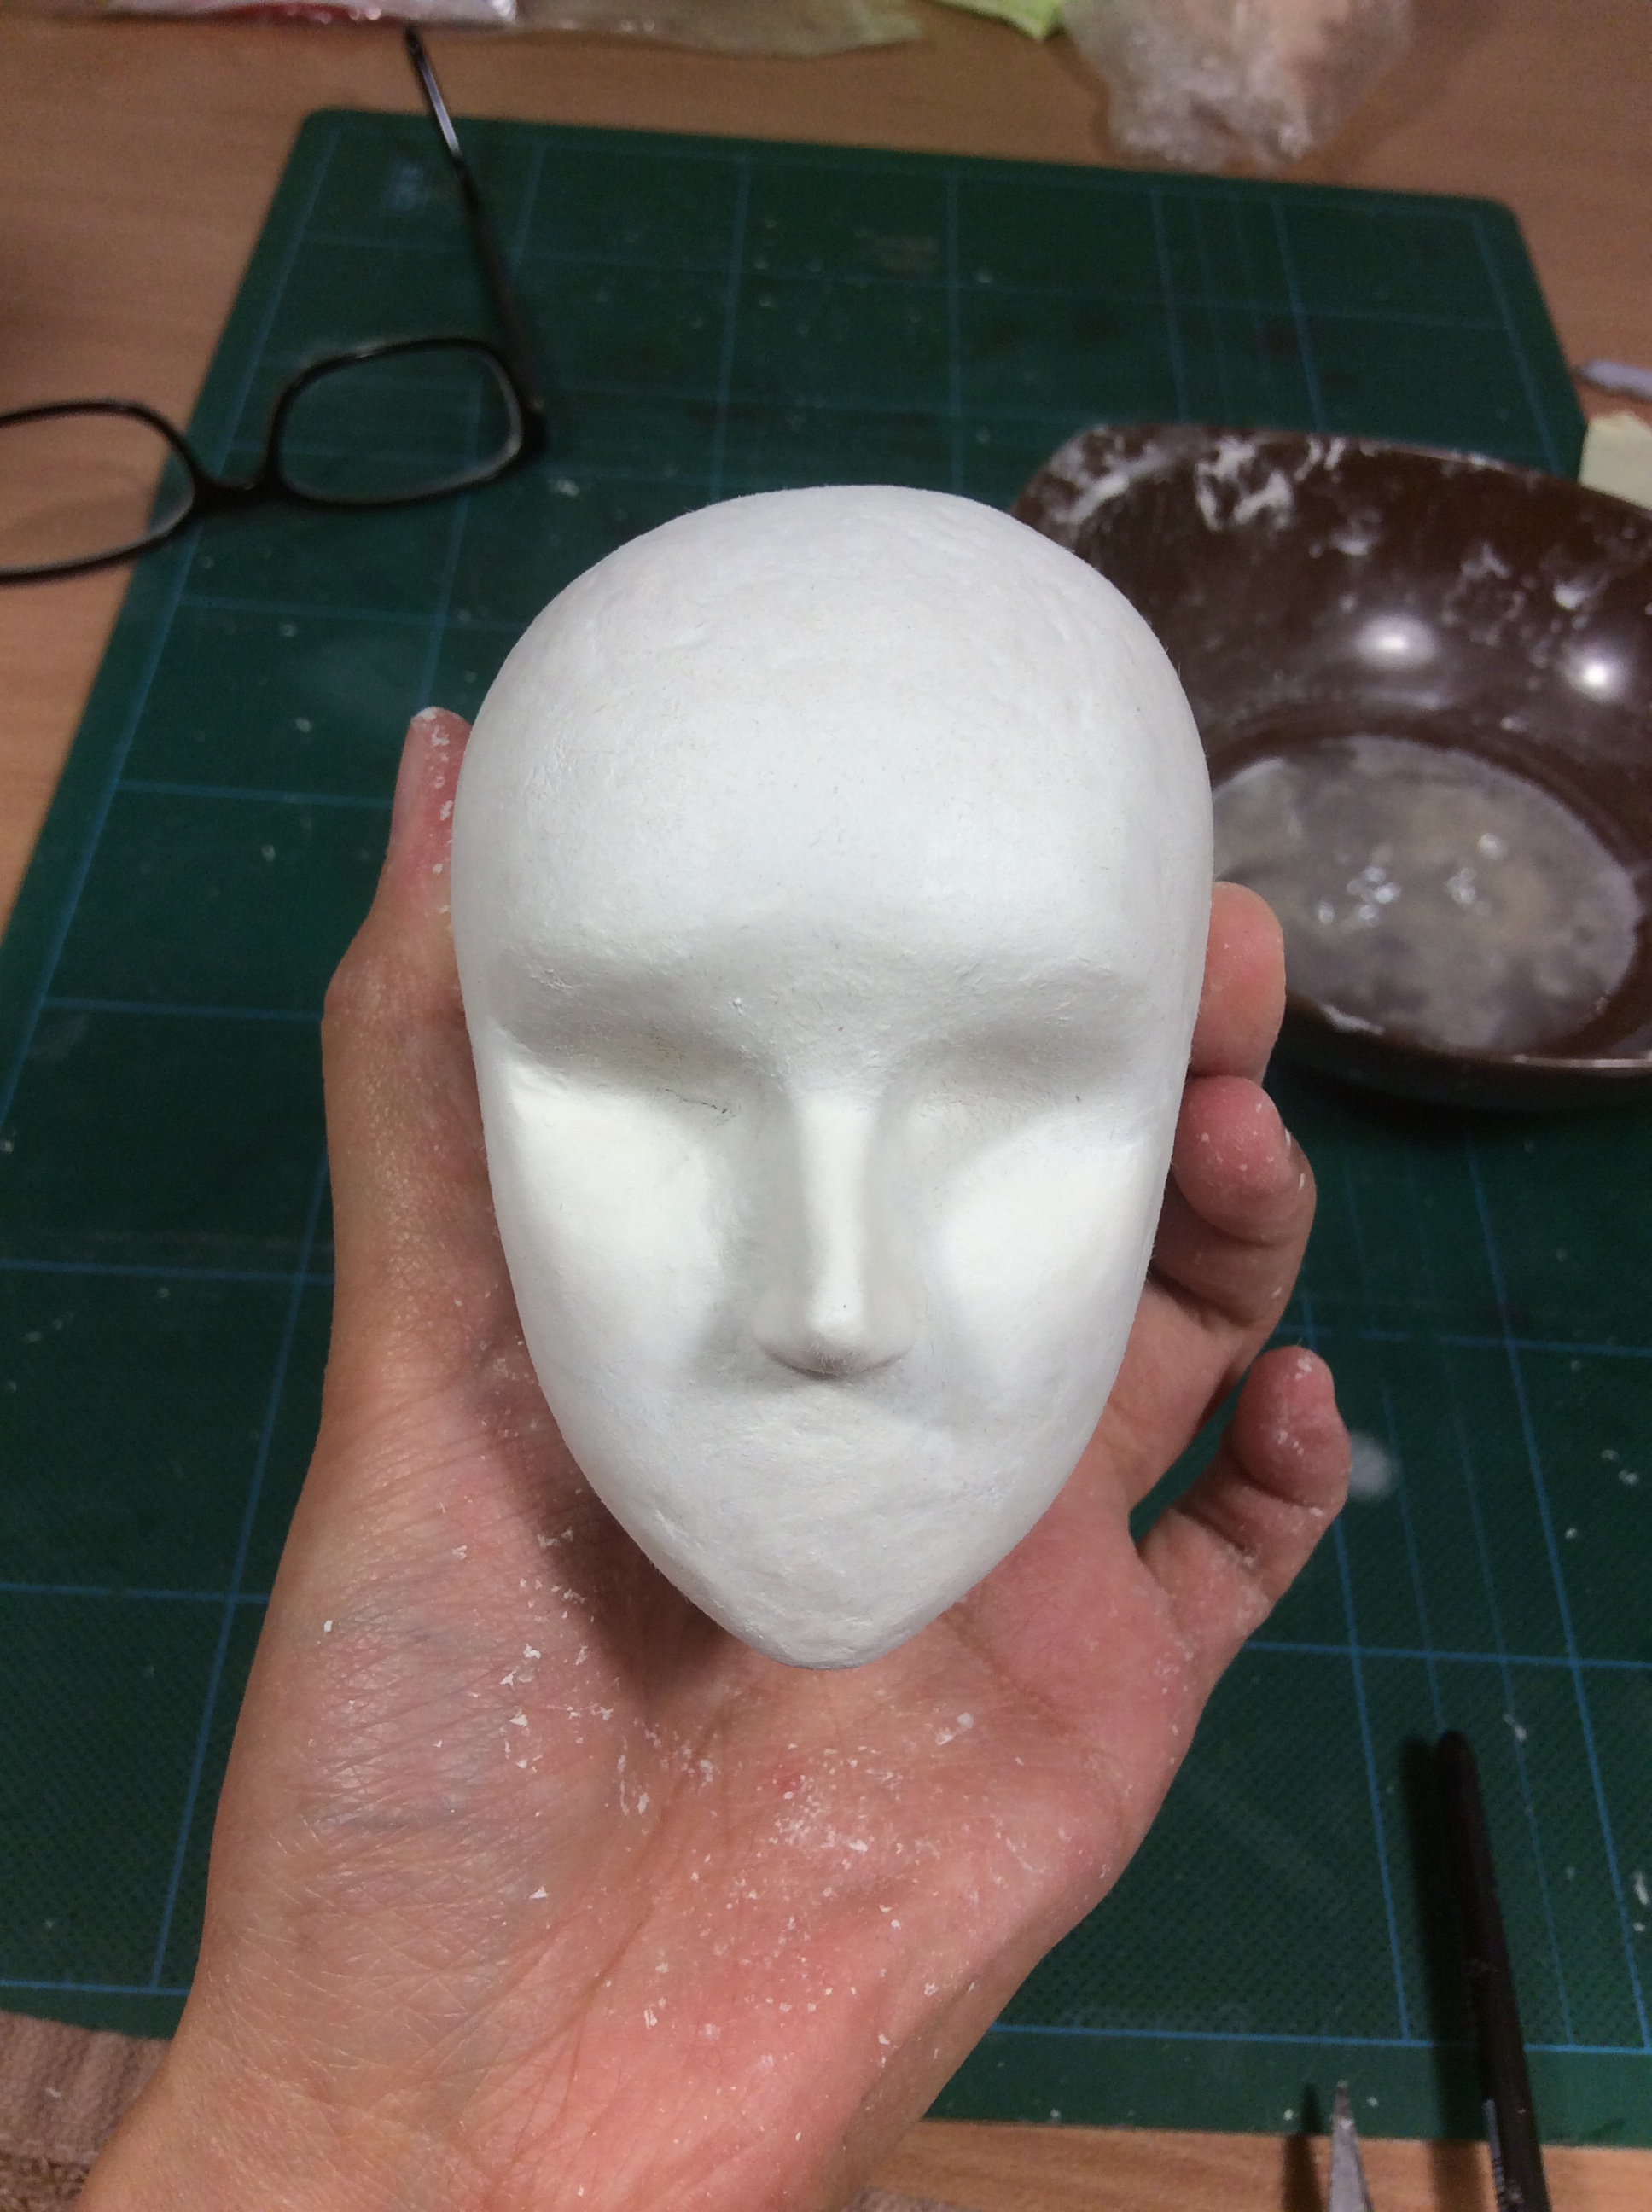 jemse---my-first-doll-head-making-progress-diary-part-1_31602409253_o